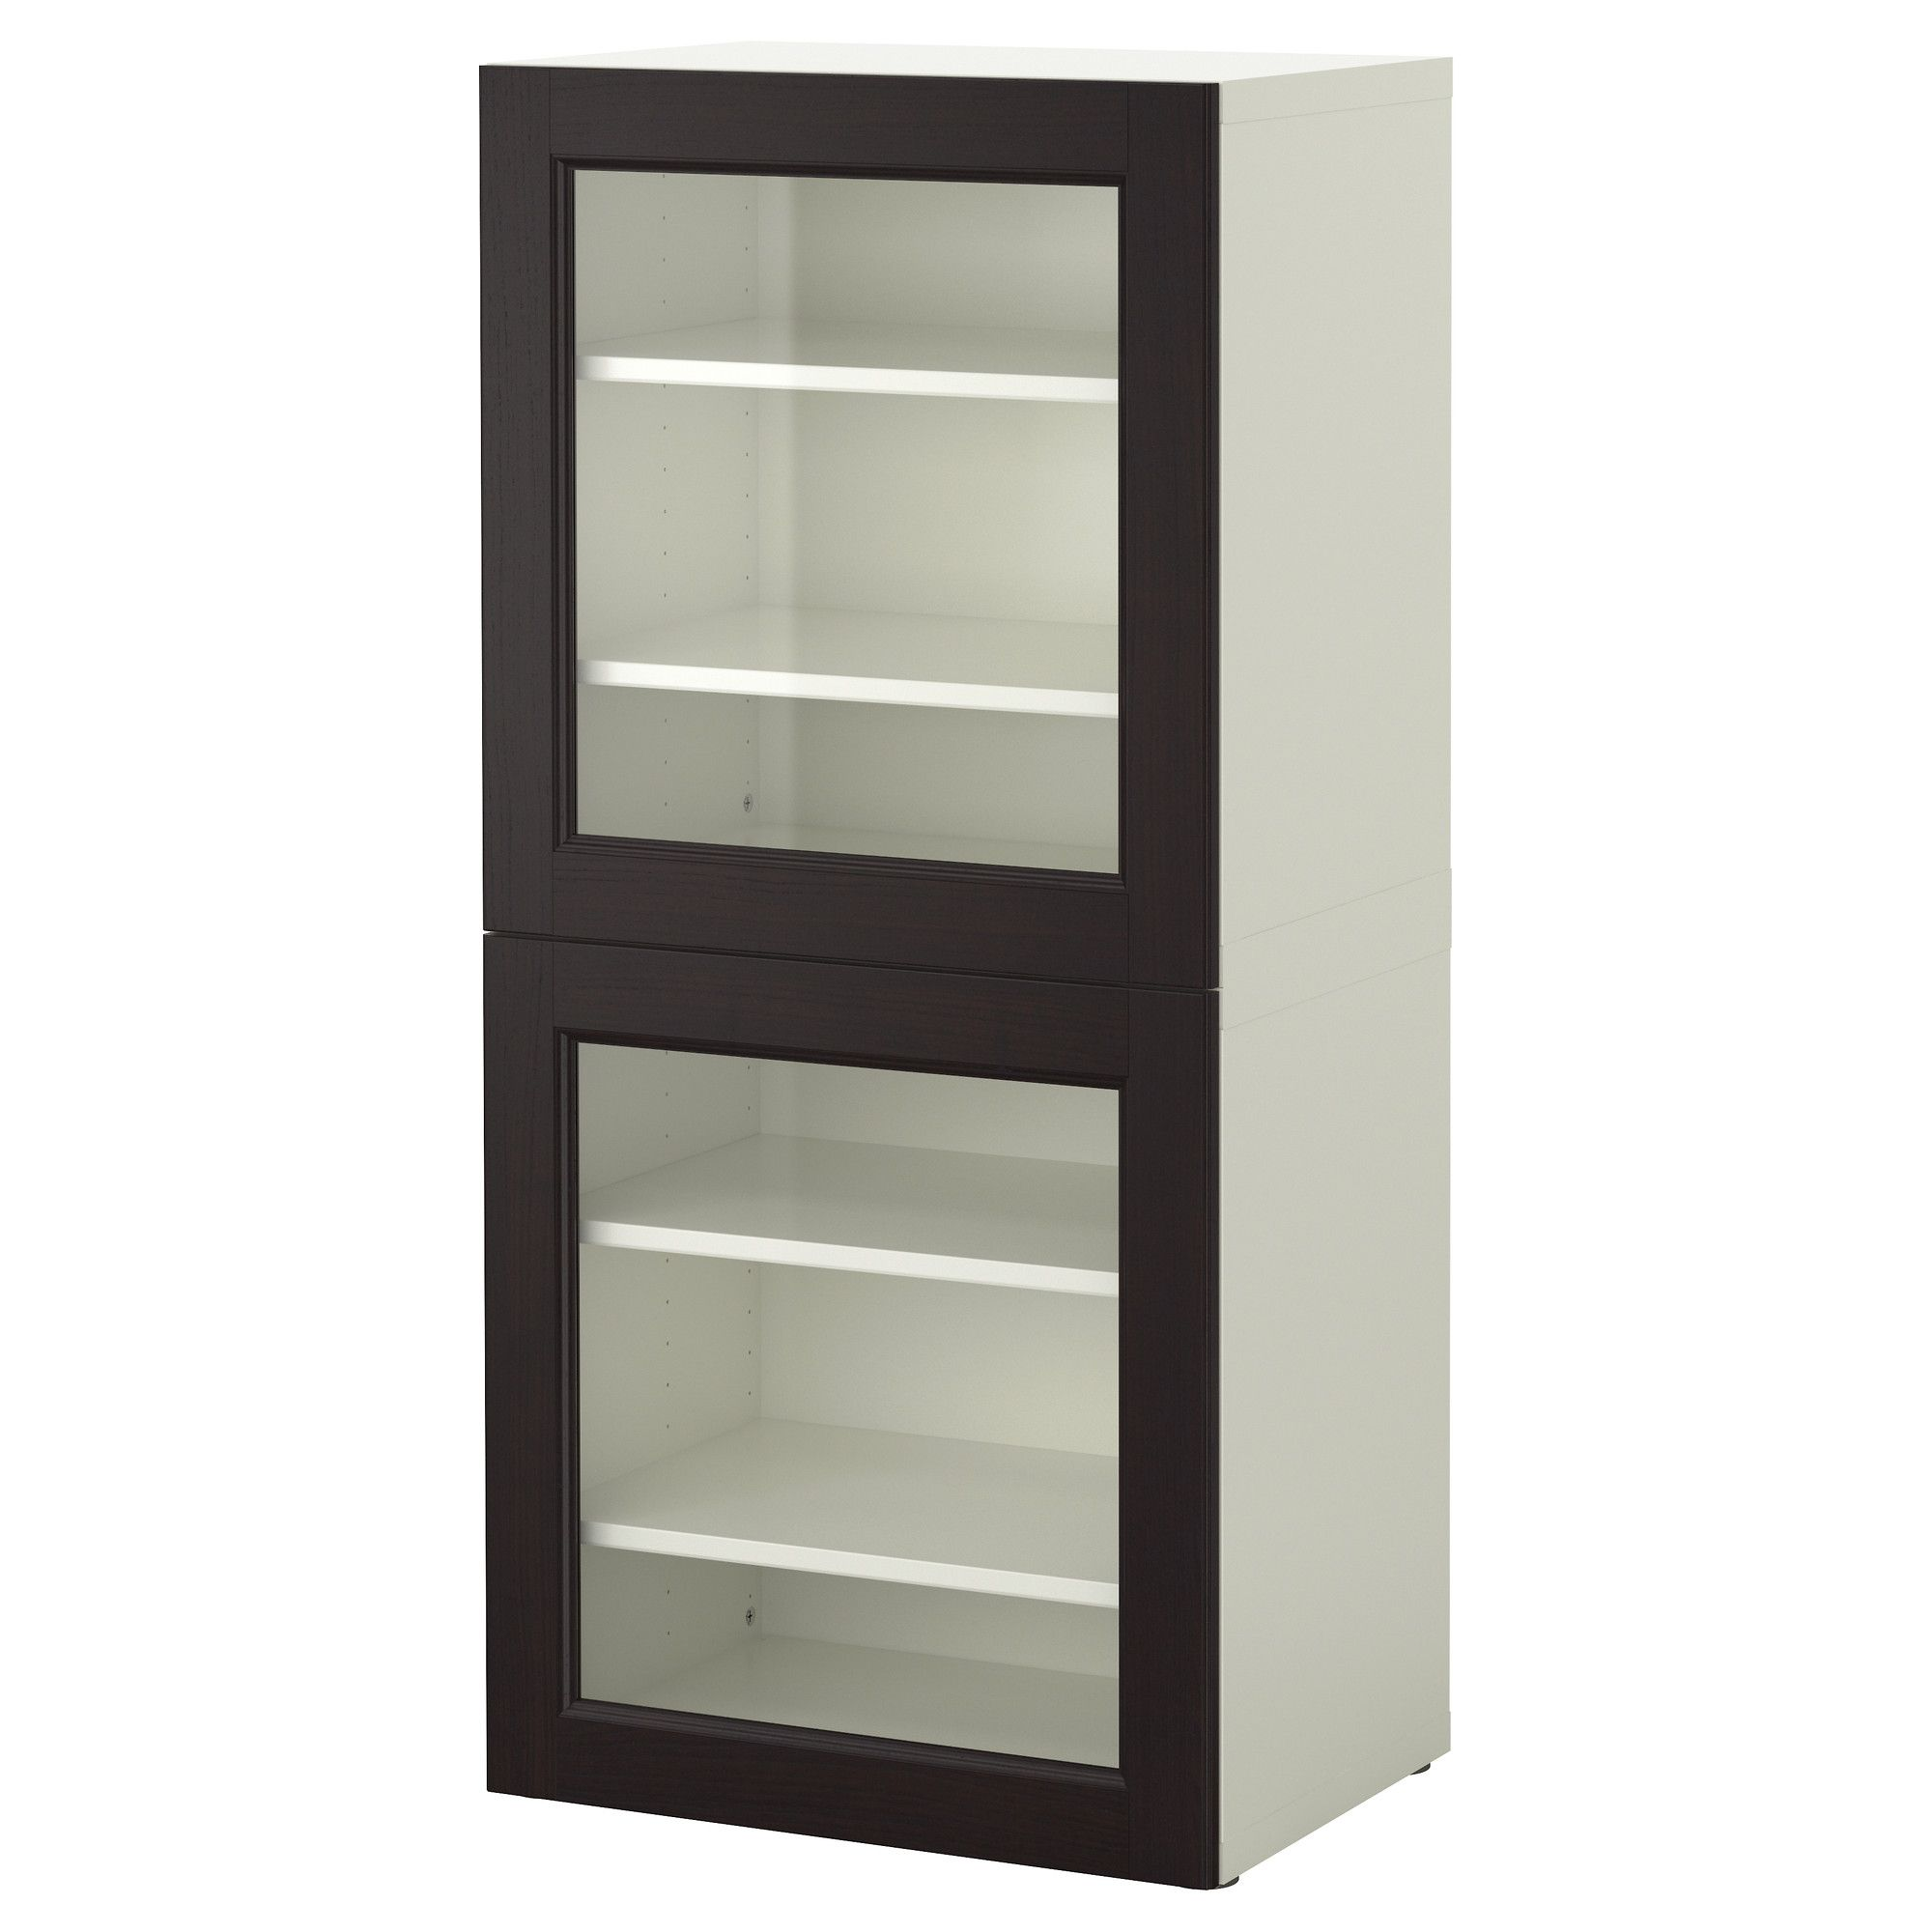 BEST… Storage bination w glass doors IKEA Could display